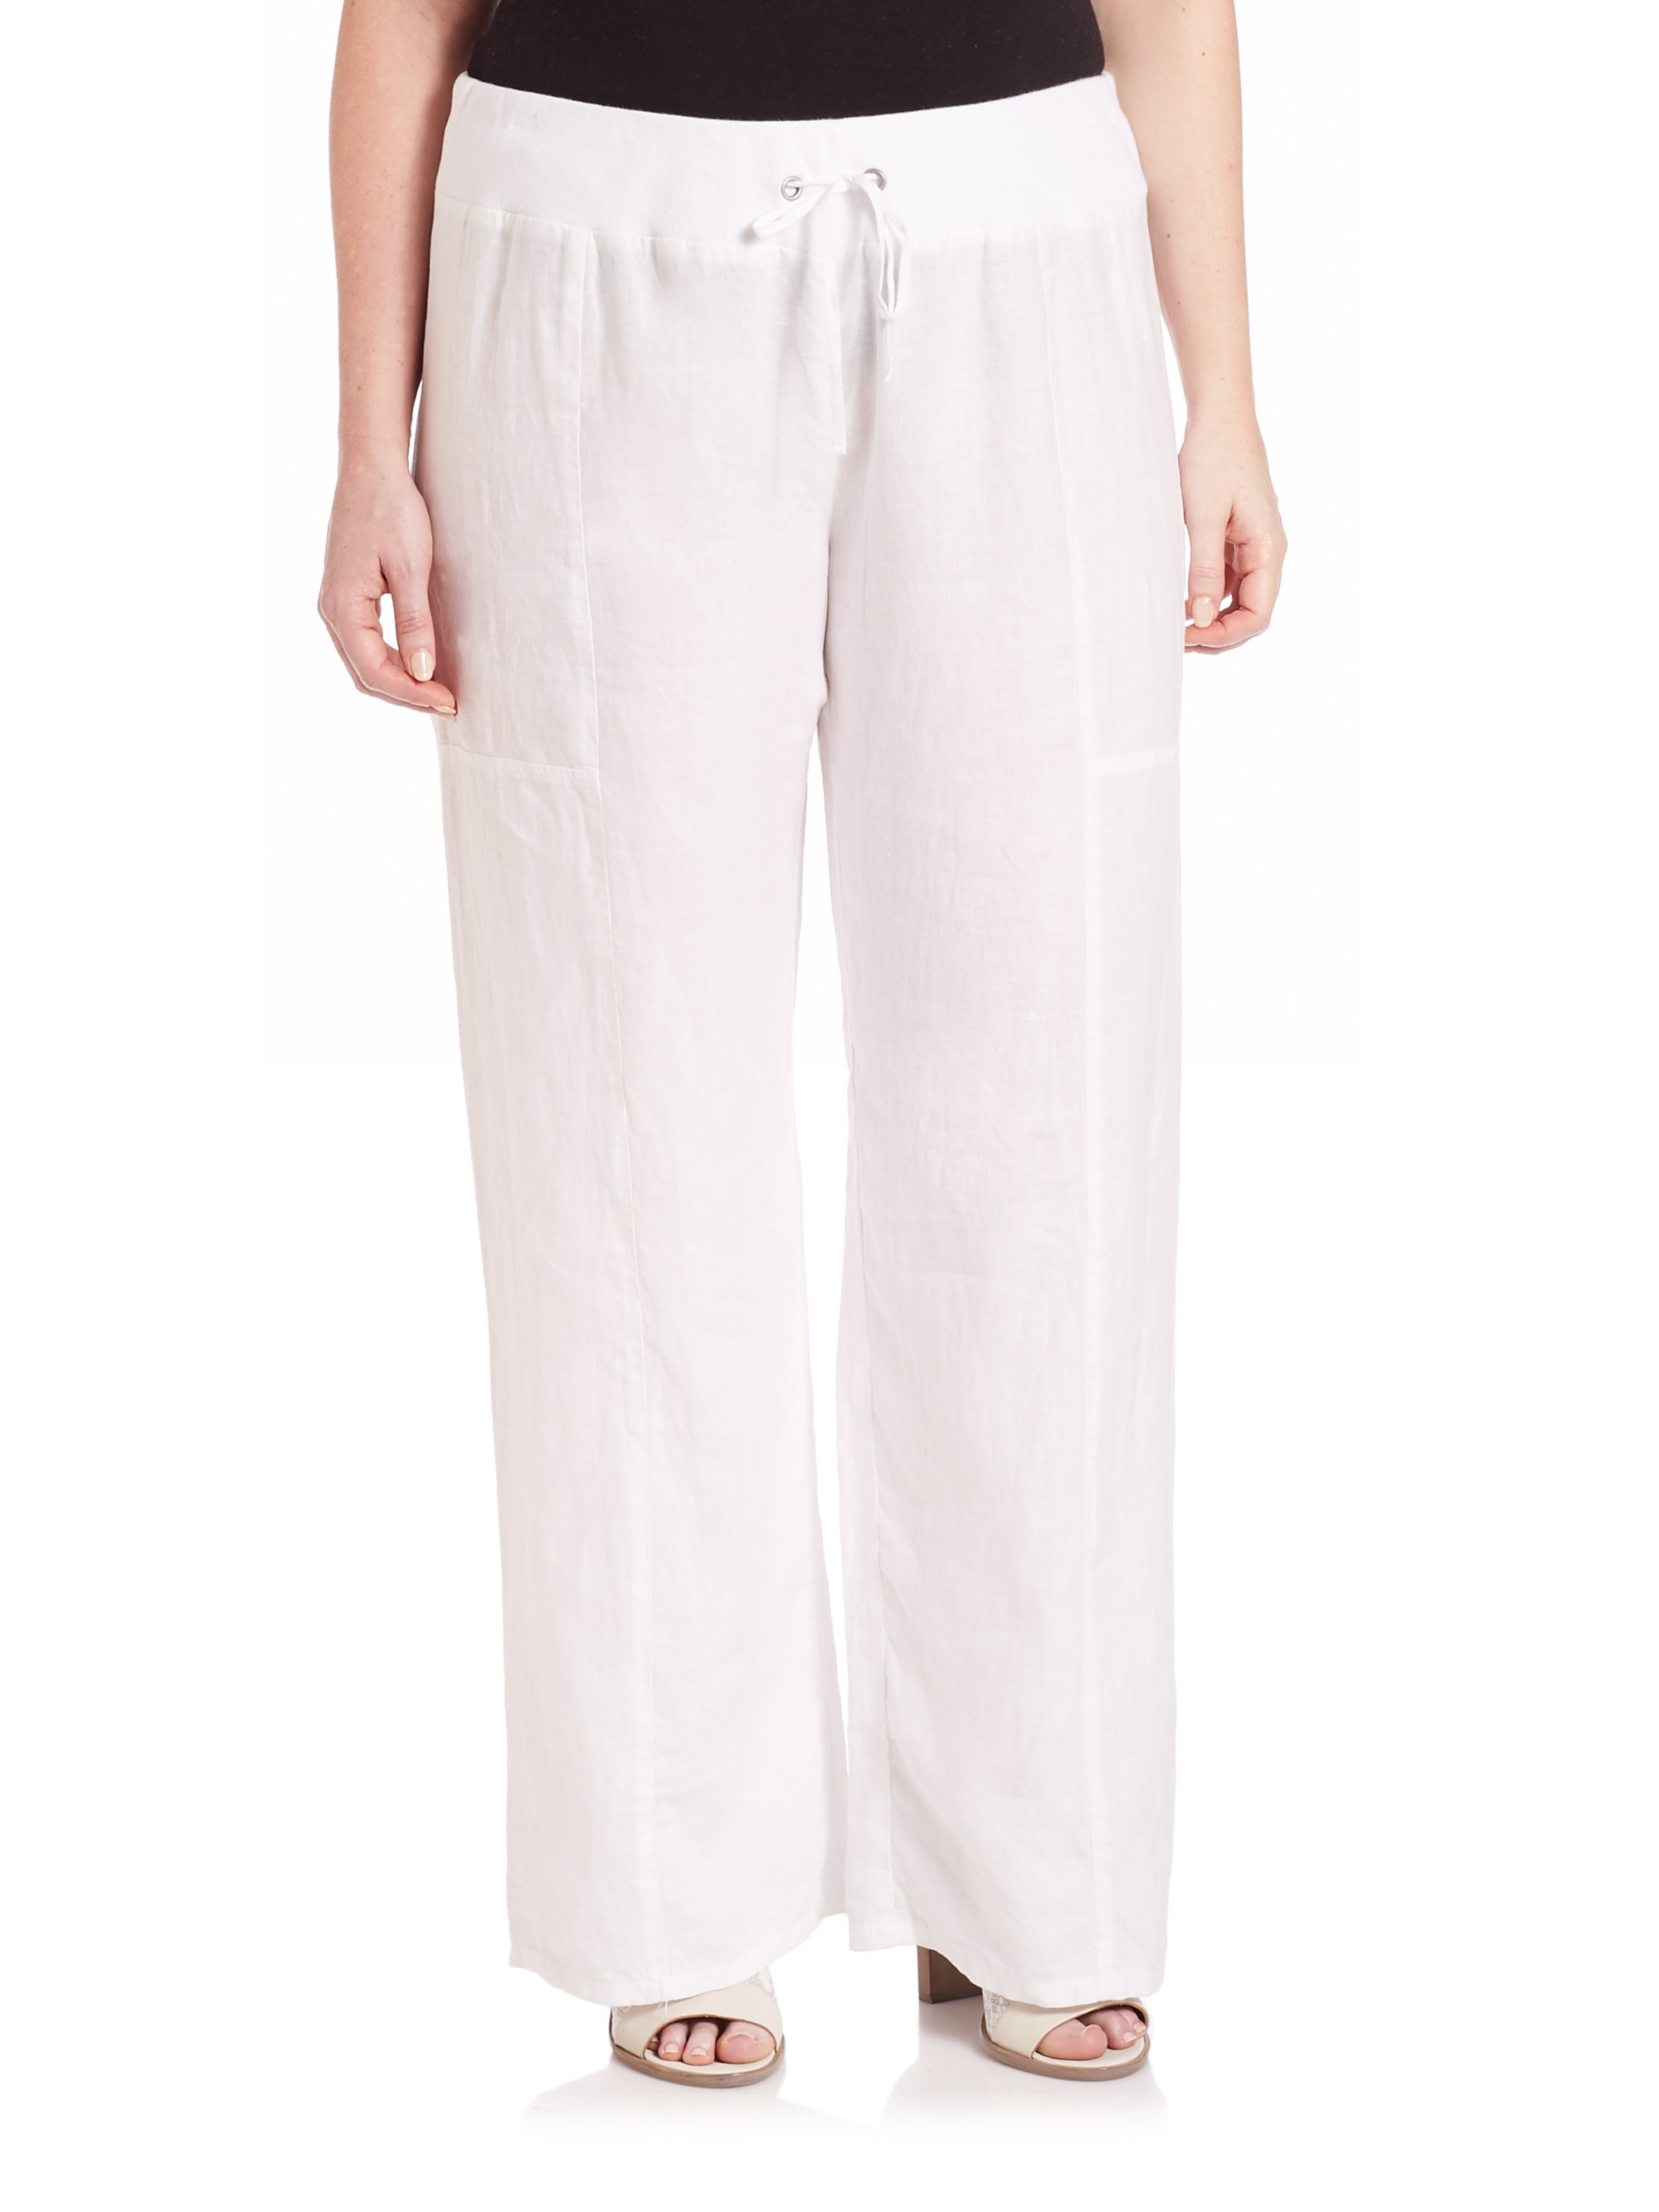 Pants: Free Shipping on orders over $45 at kumau.ml - Your Online Pants Store! Get 5% in rewards with Club O! Shore Trendz Women's Wide Leg Boho Palazzo Pants Made in the USA. 21 Reviews. SALE. Quick View. Sale $ White Mark Women's Plus Size Super Stretch Denim Jeans. 41 Reviews.